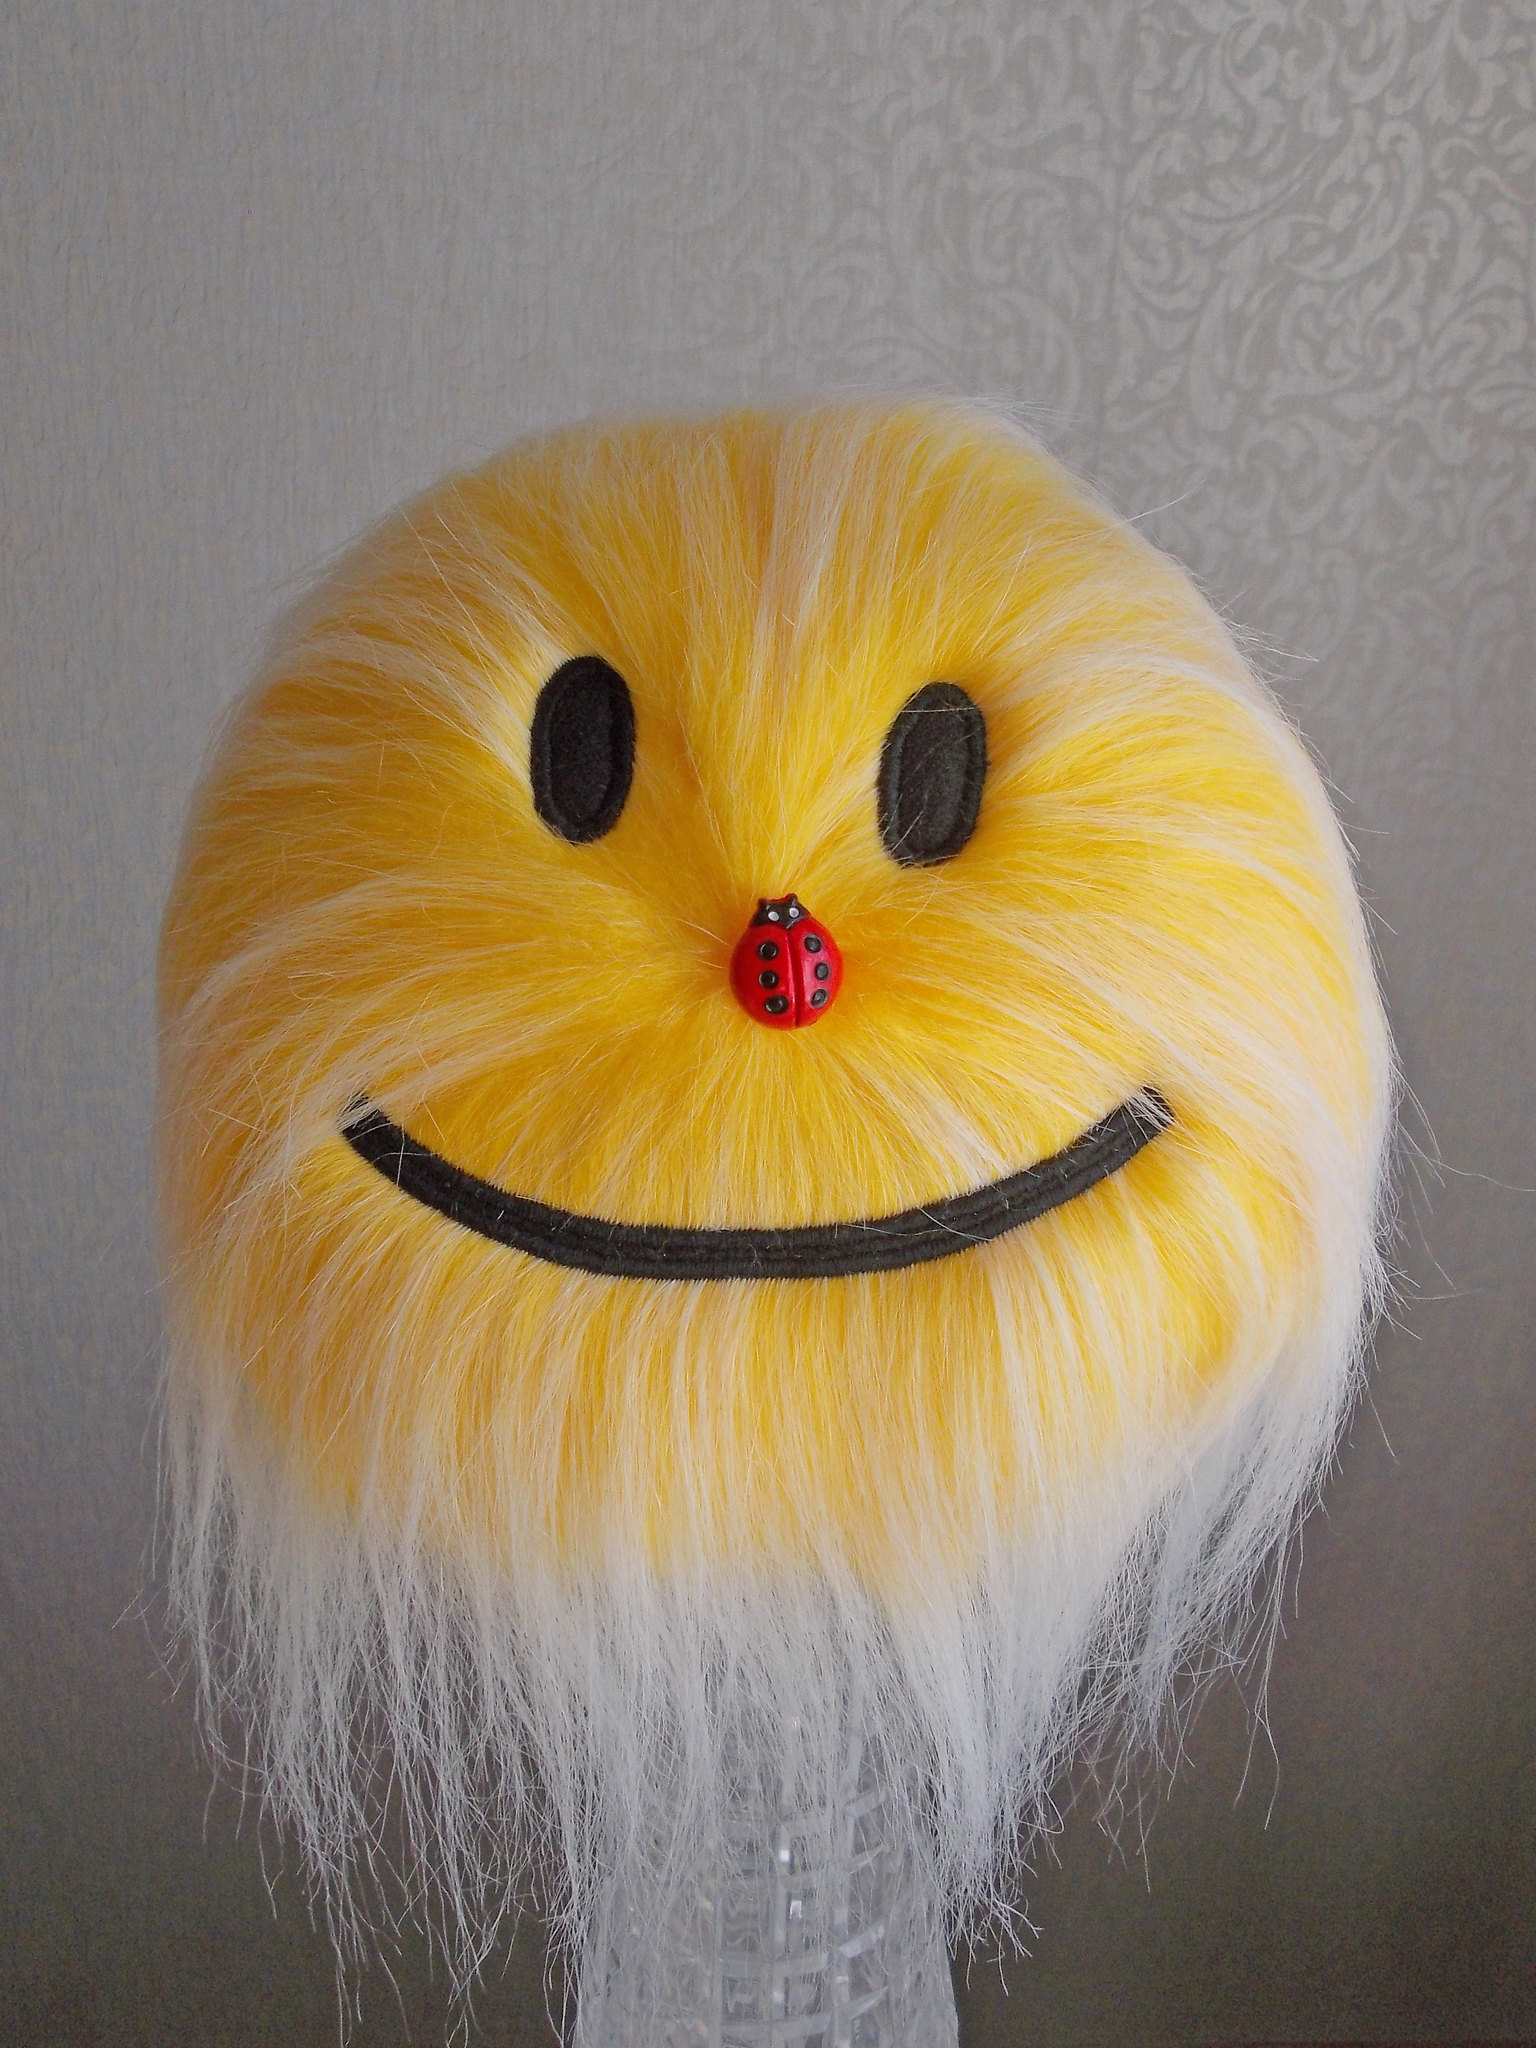 furry yellow plush smiley face stuffed toys_118